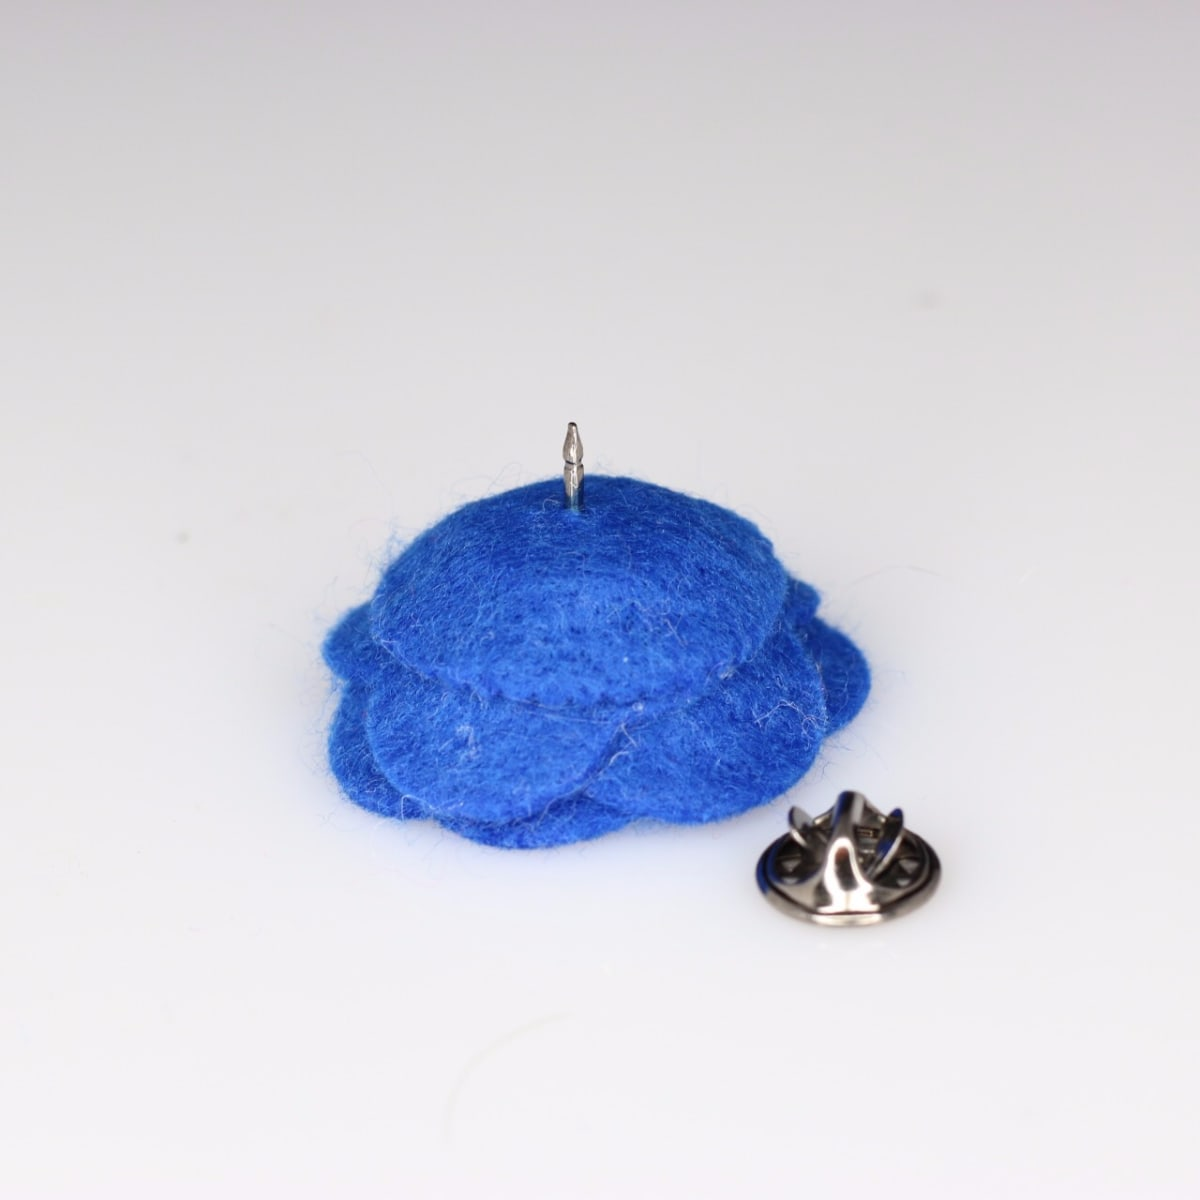 Woven Menswear Royal Blue Felt Flower Lapel Pin